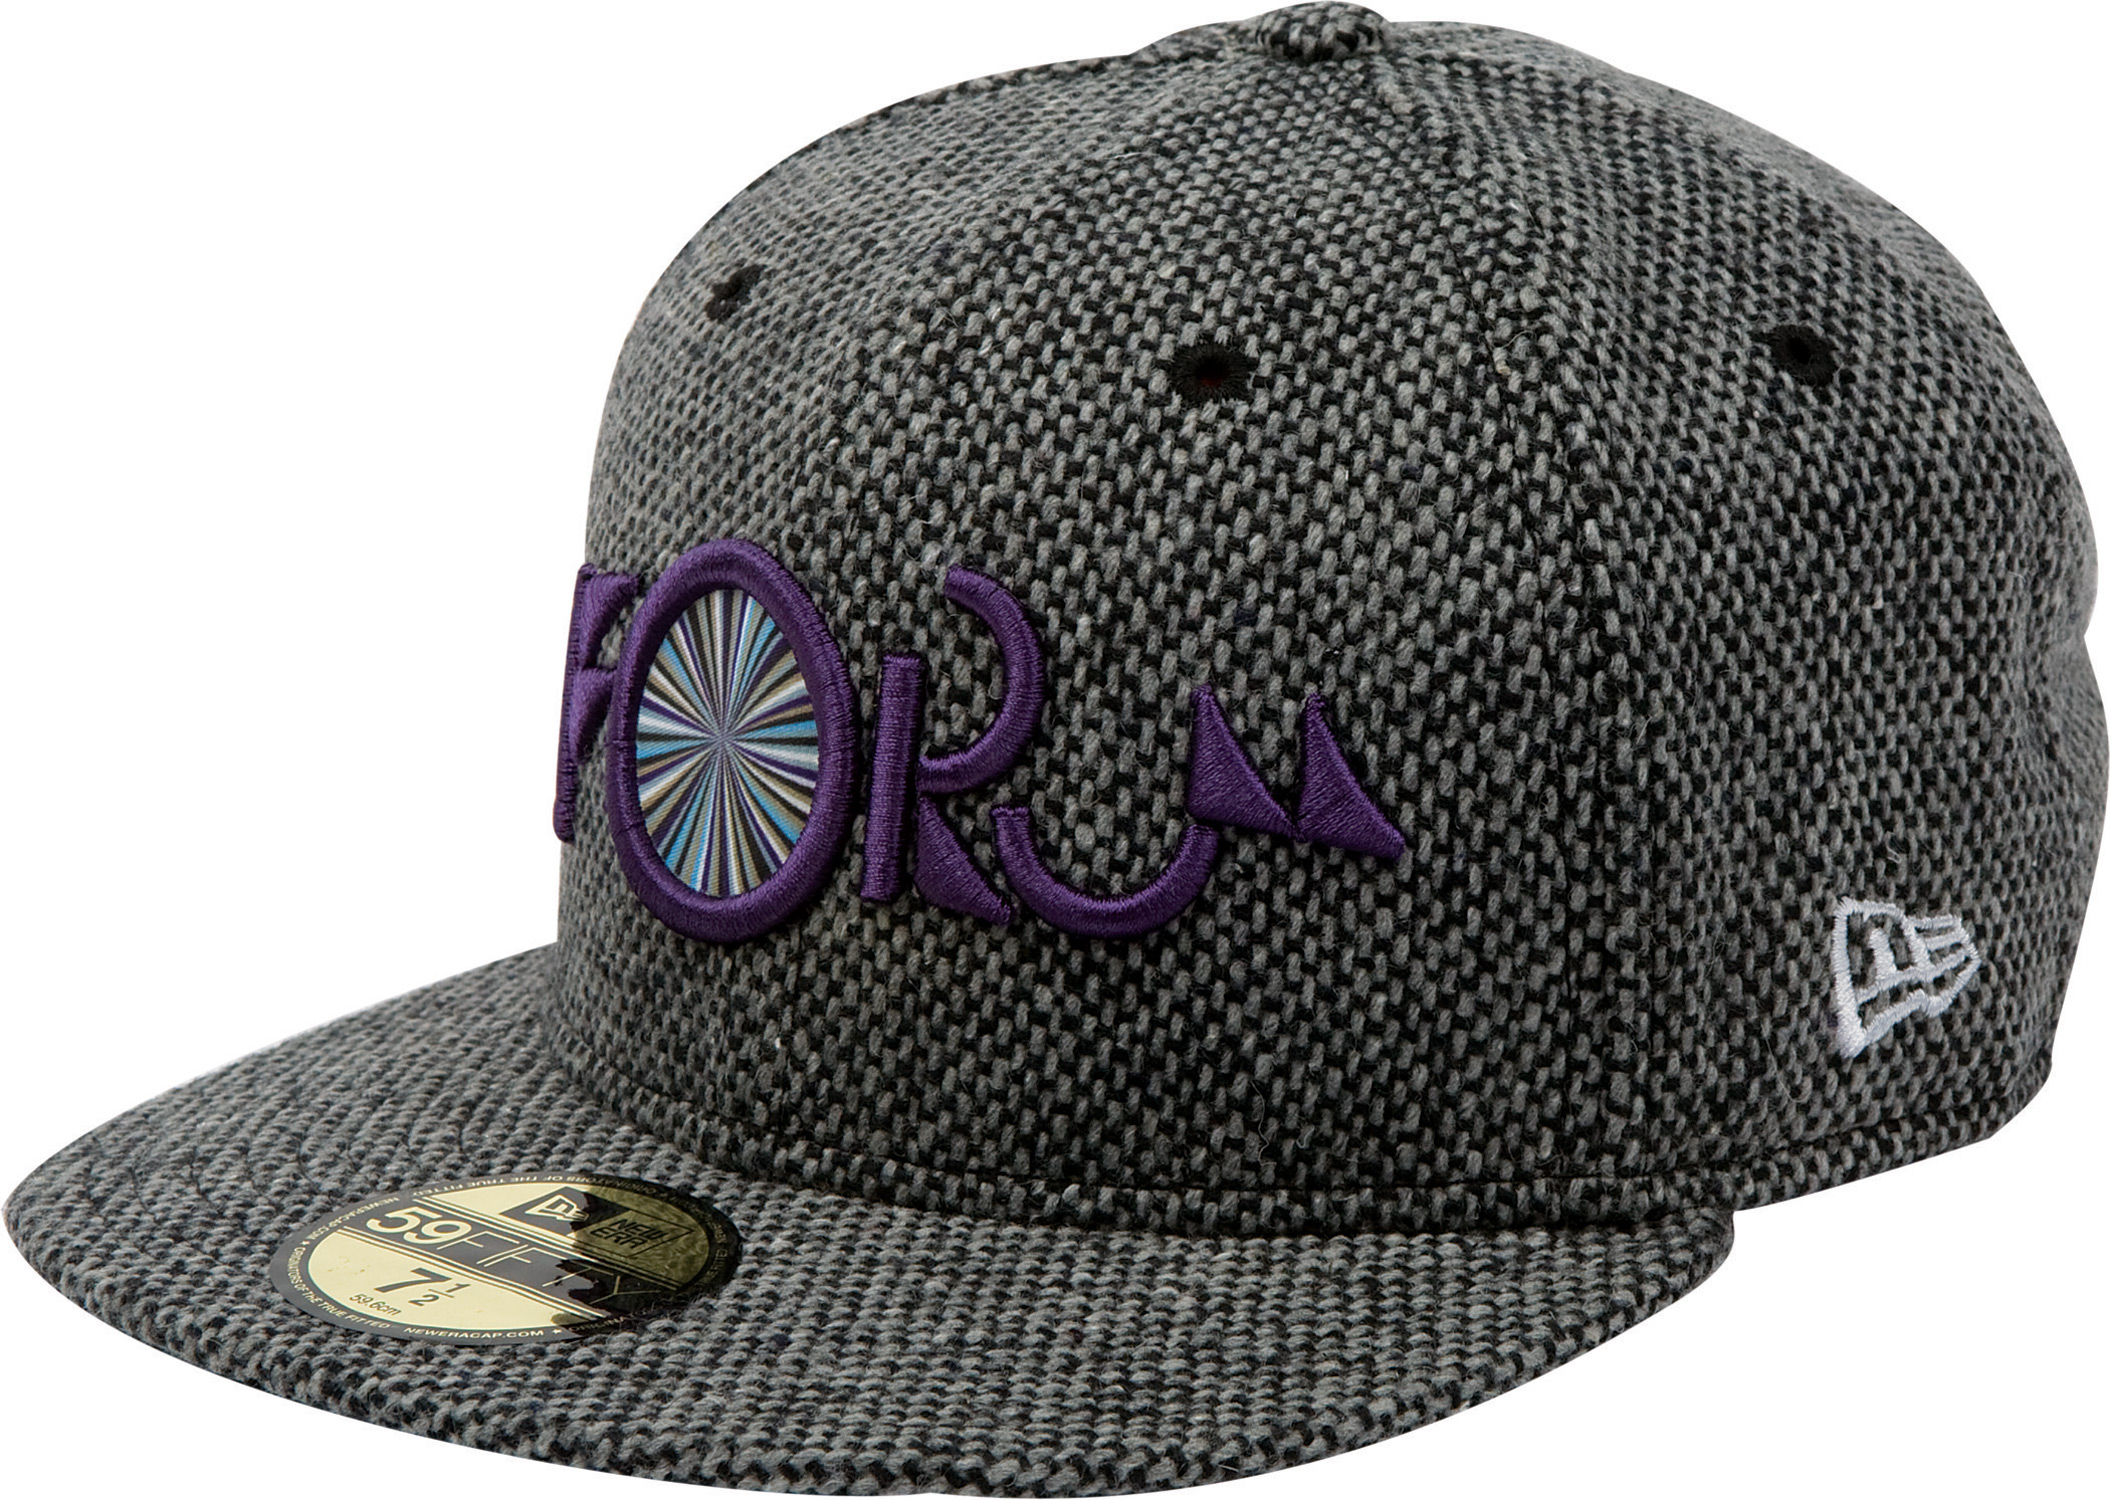 Key Features of the Forum Nugget New Era Cap: 3D embroidery 59/50 100% wool - $33.95